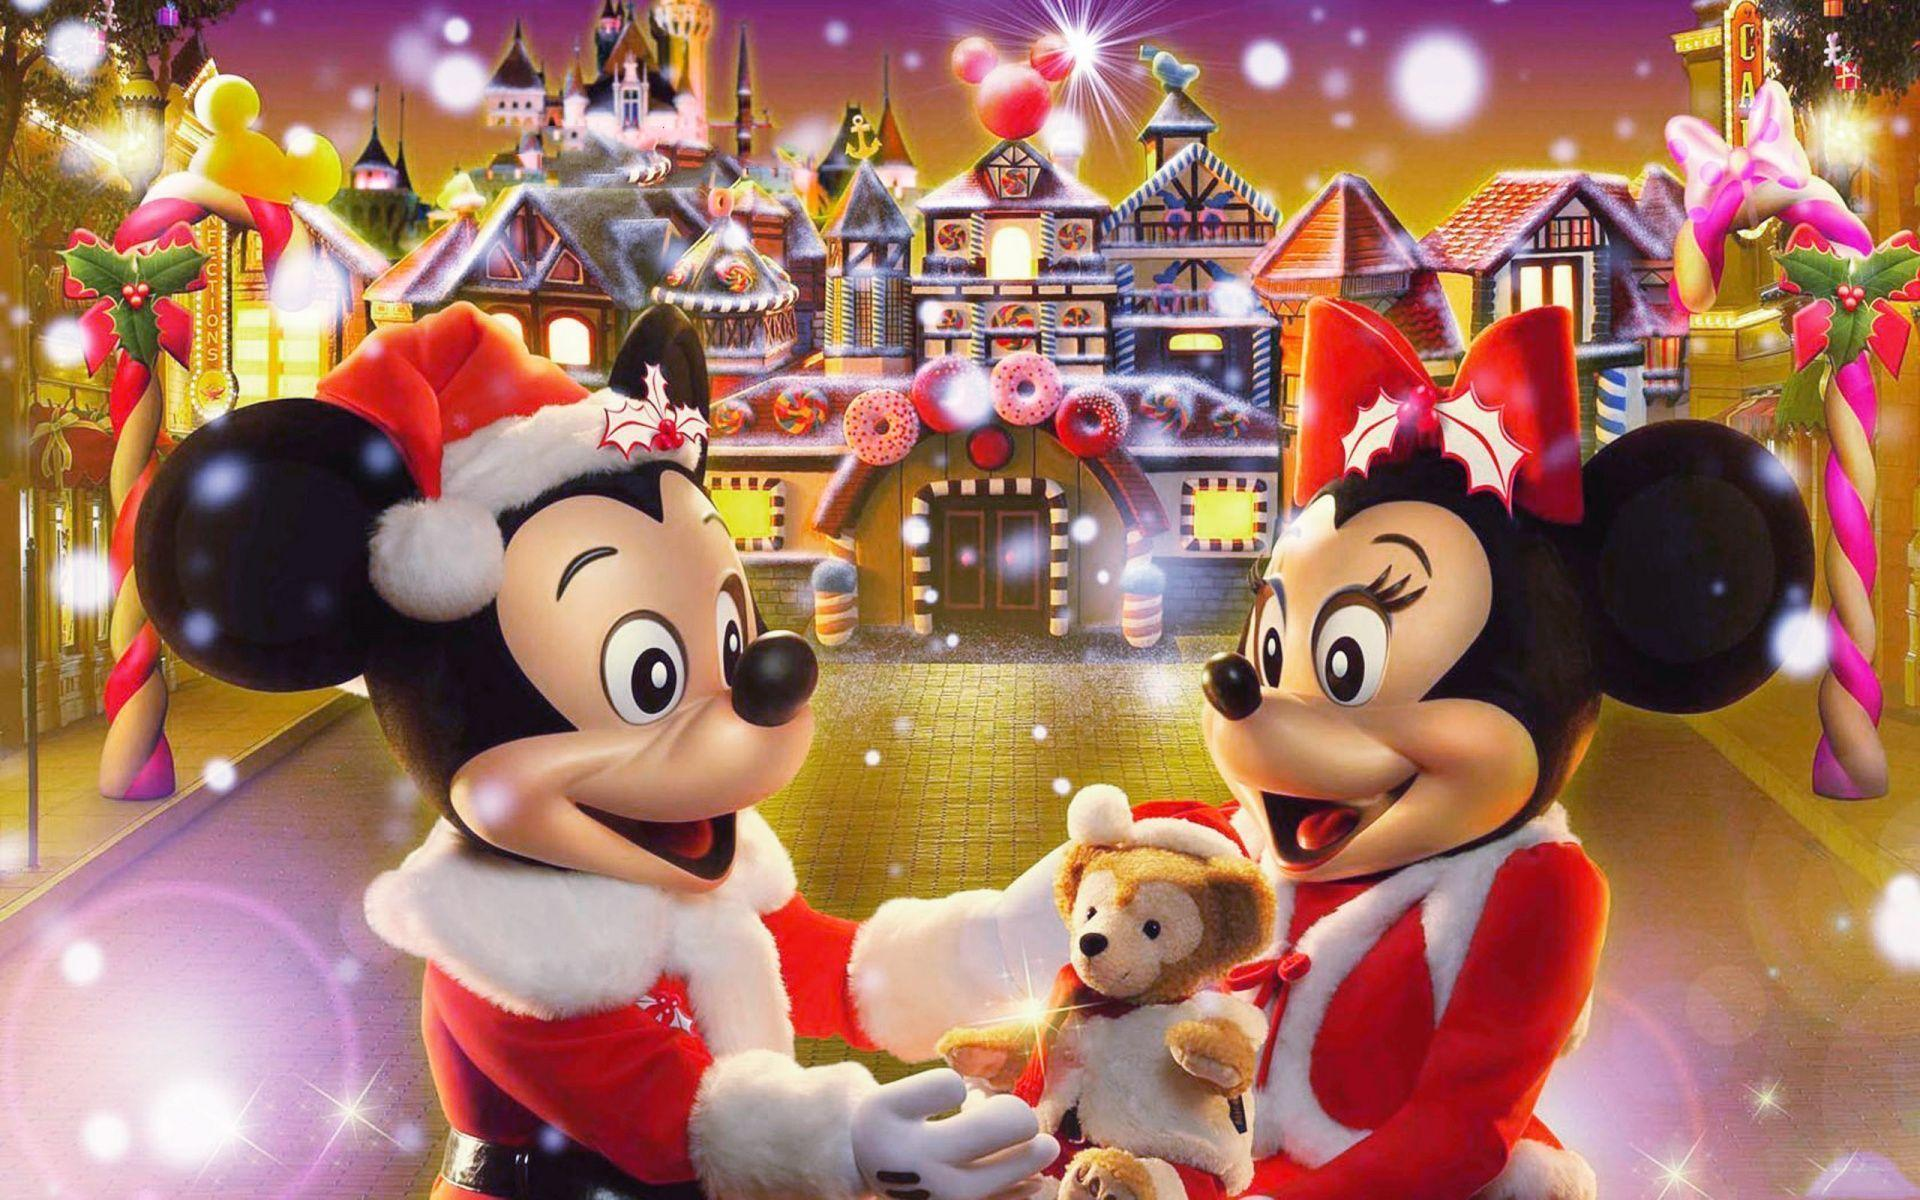 Disney Christmas Wallpaper Backgrounds 1024x768PX ~ Wallpapers